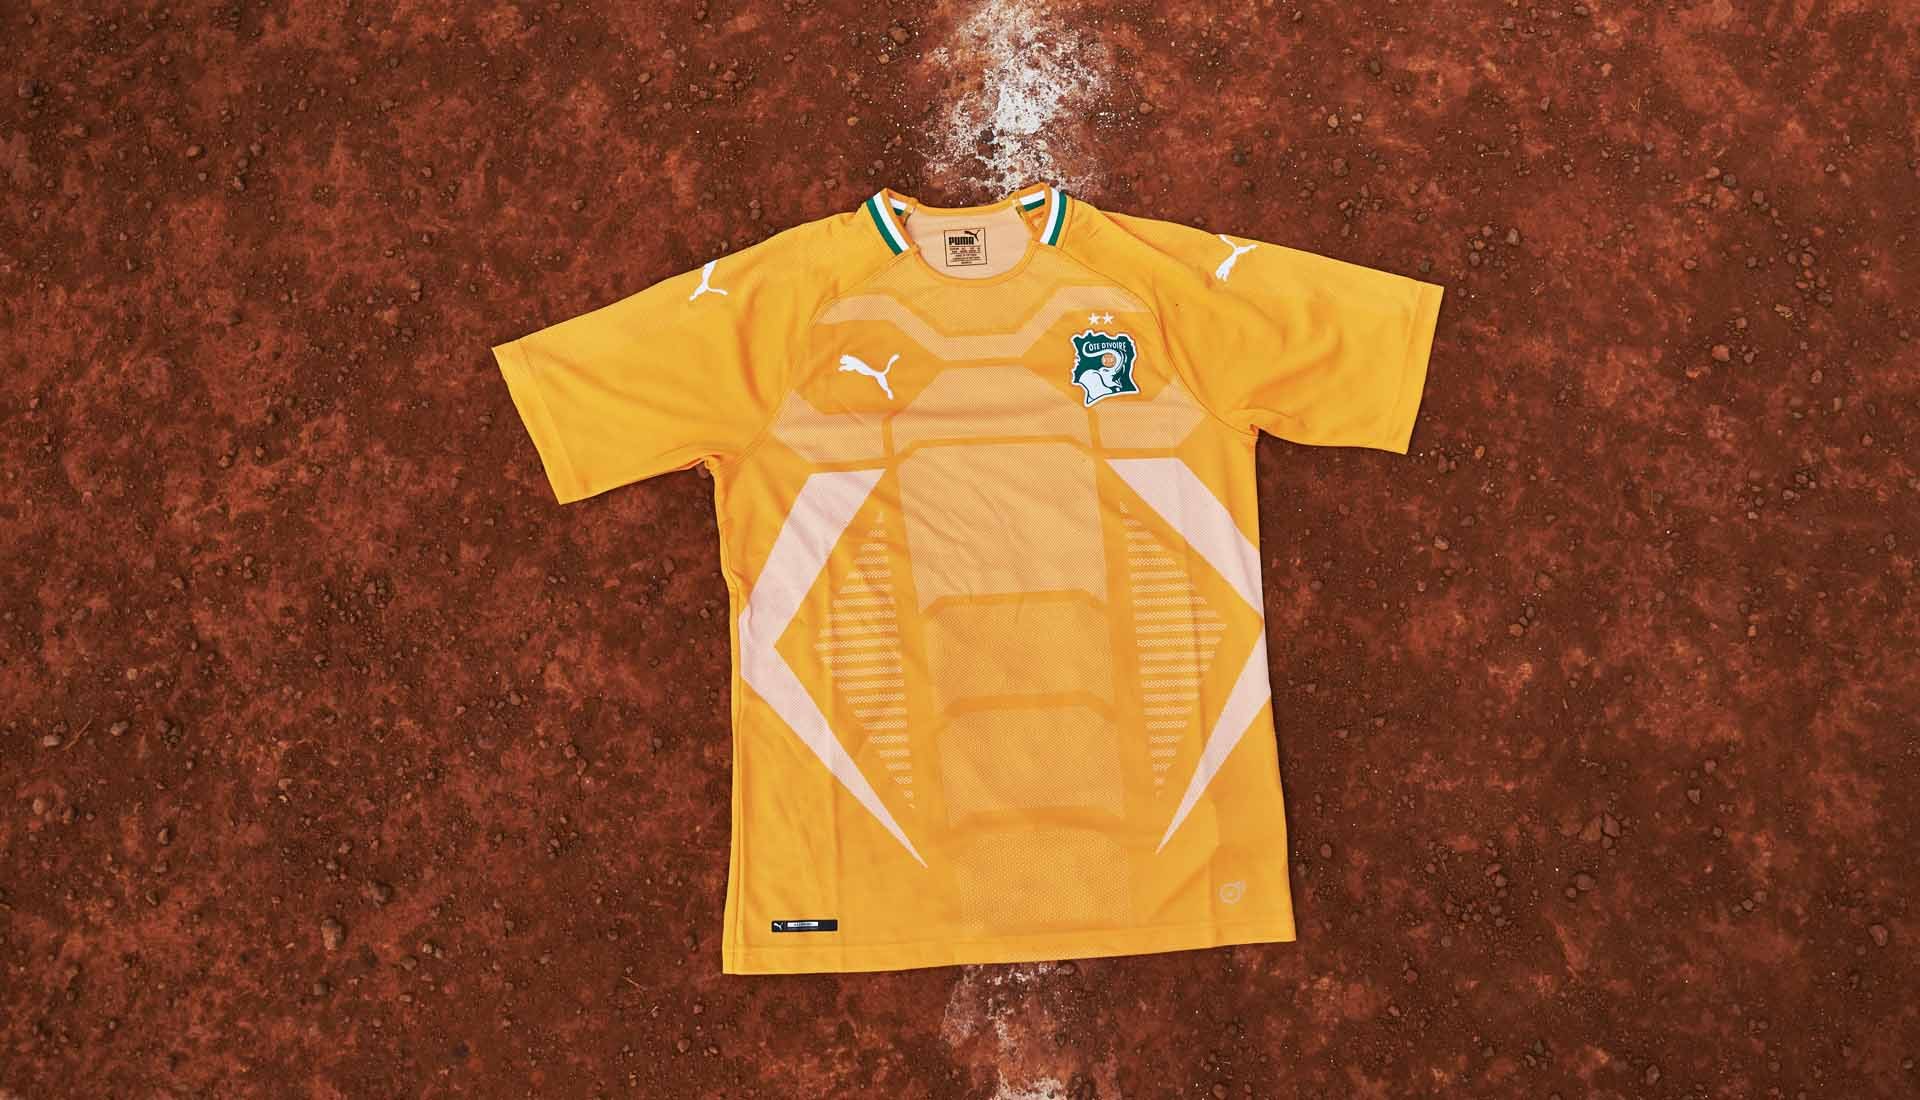 maillot-football-Puma-Cote-Ivoire-domicile-2018-img3.jpg